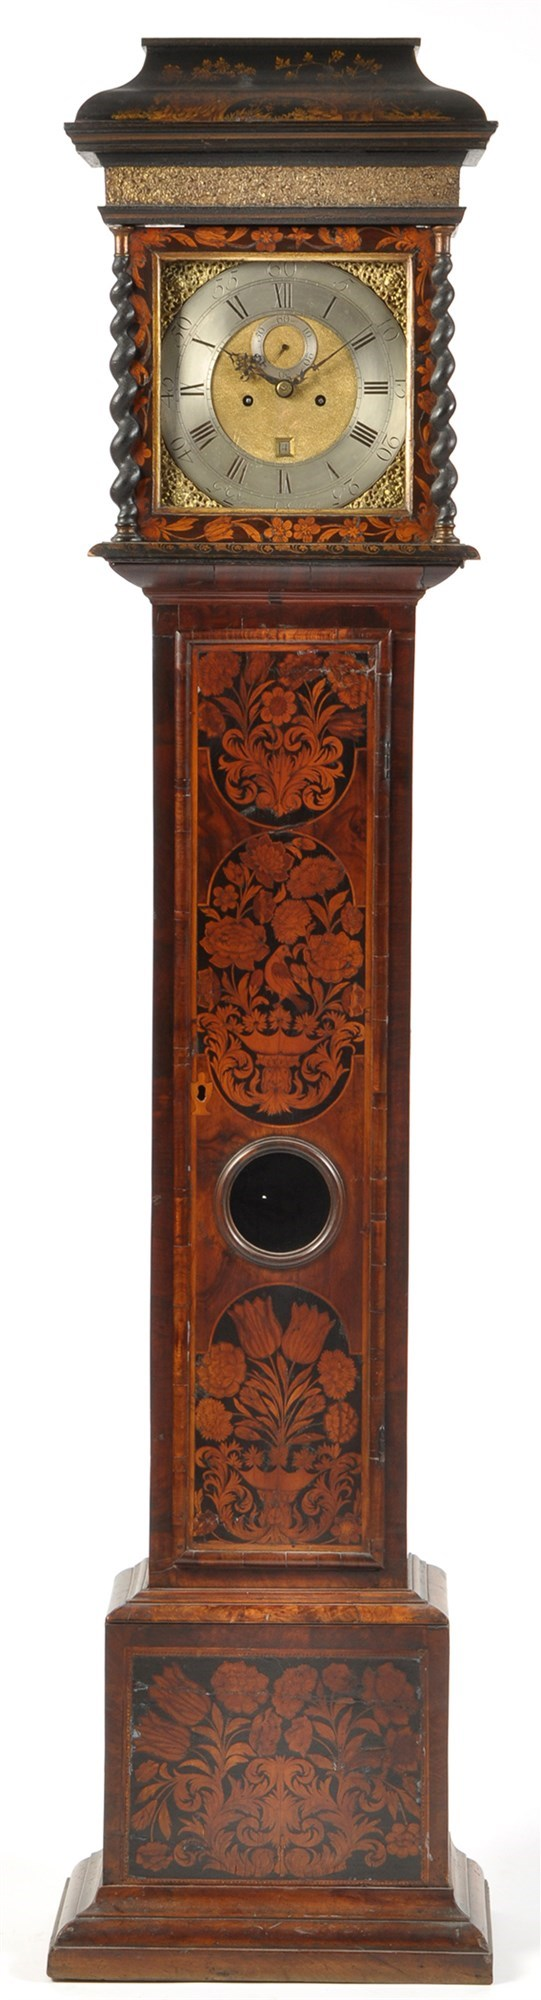 Hindley, York: a walnut and floral marquetry longcase clock,